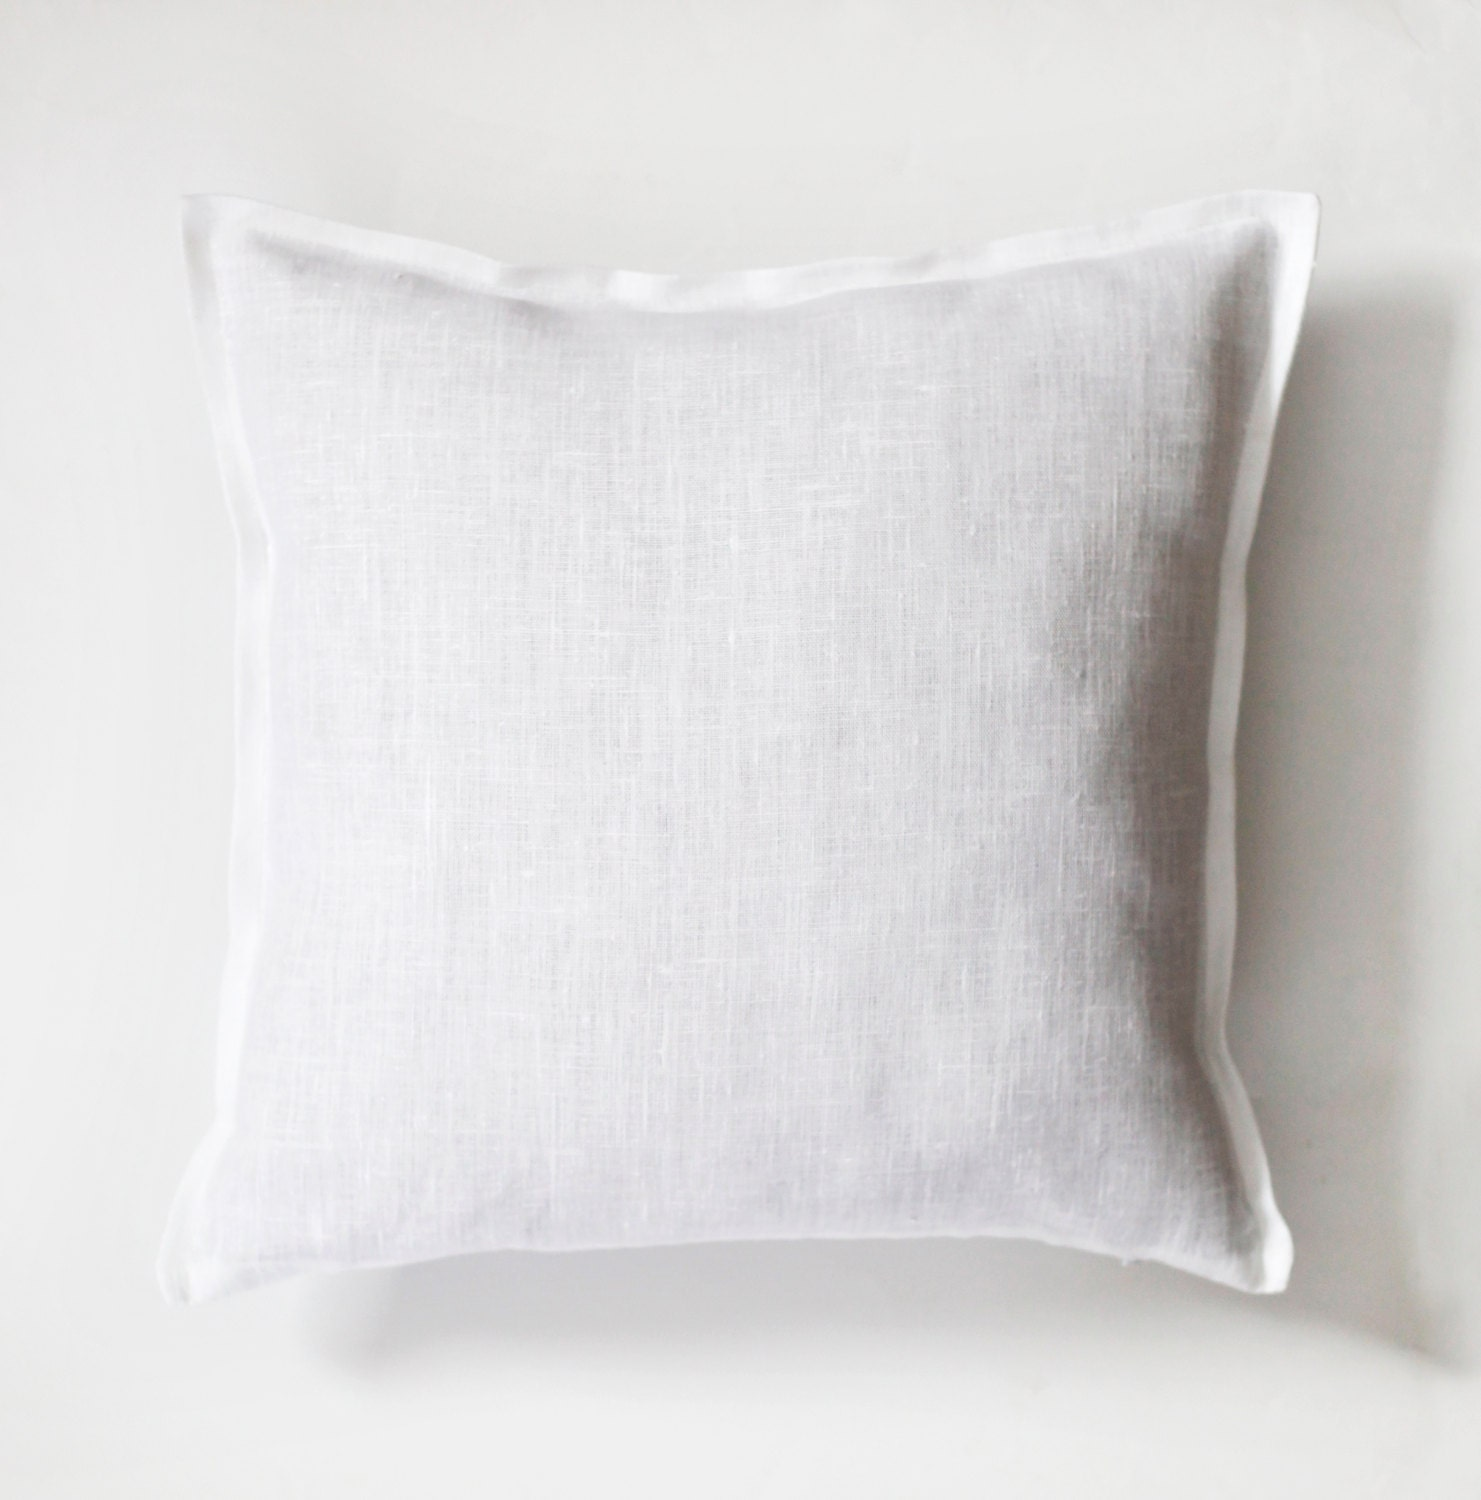 Throw Pillows For White Sofa : White pillow white pillow cover white natural fabric